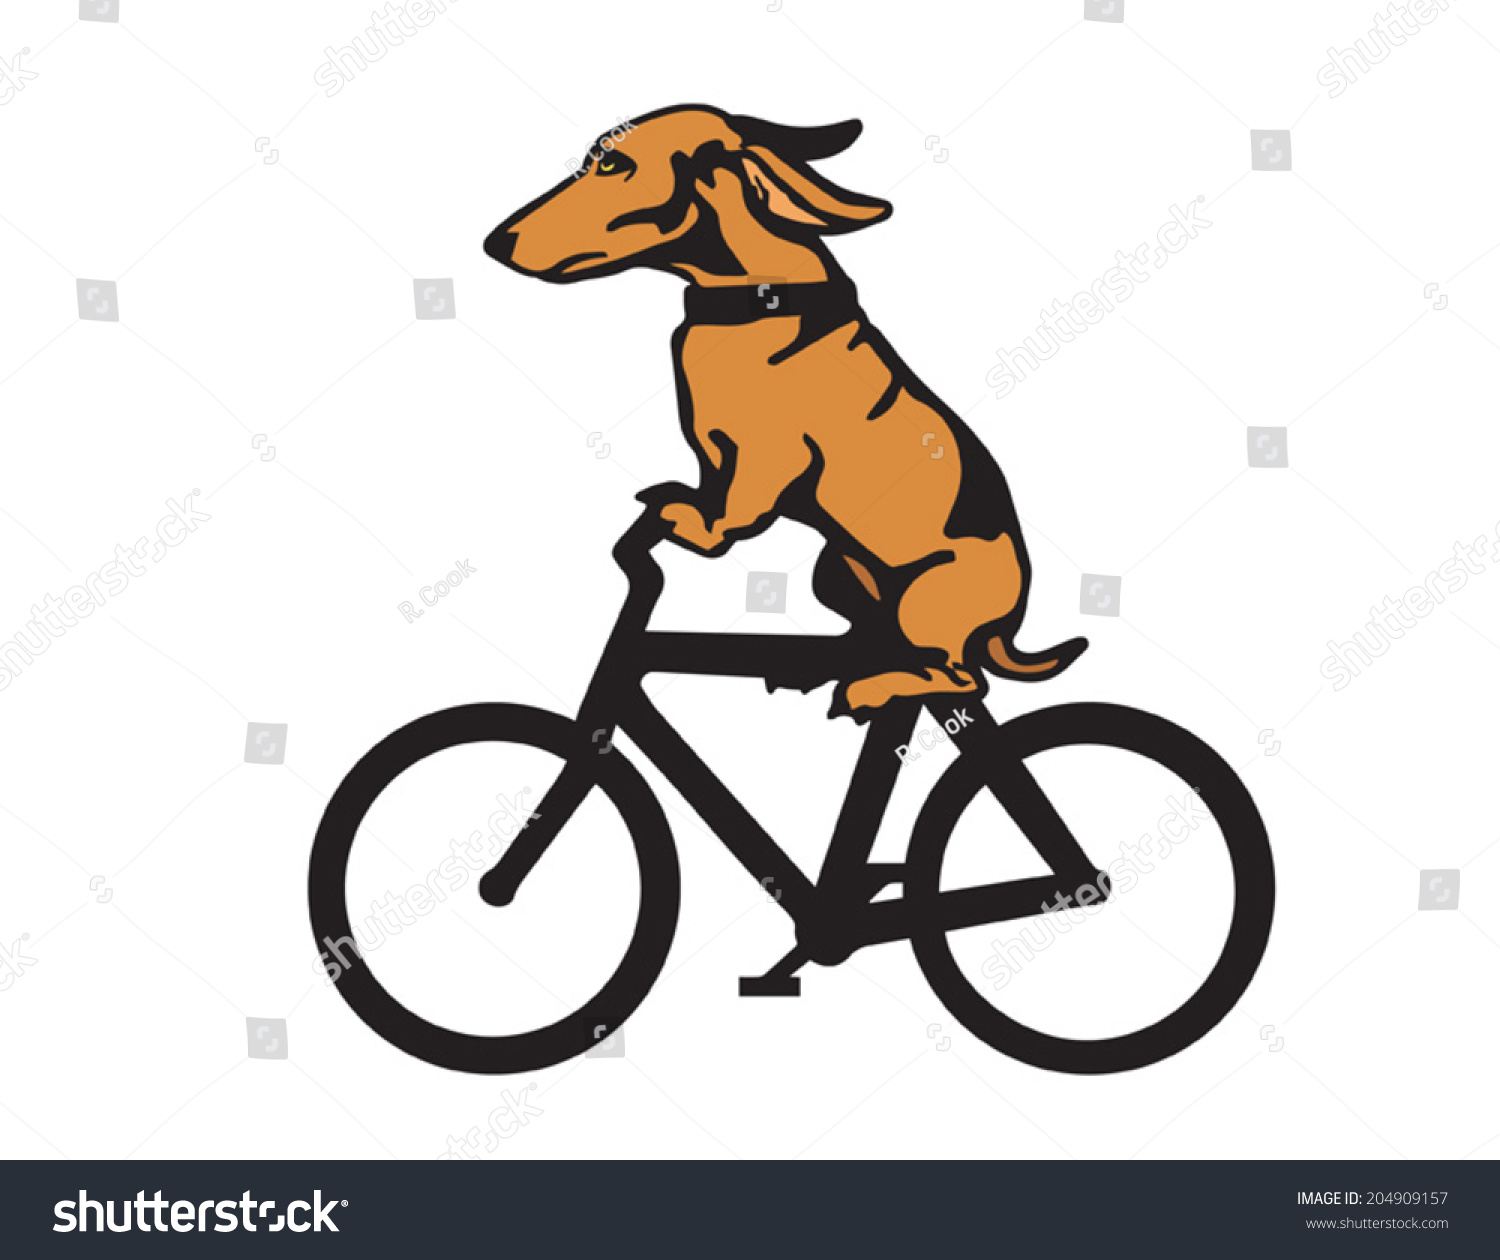 dog riding motorcycle clipart - photo #26